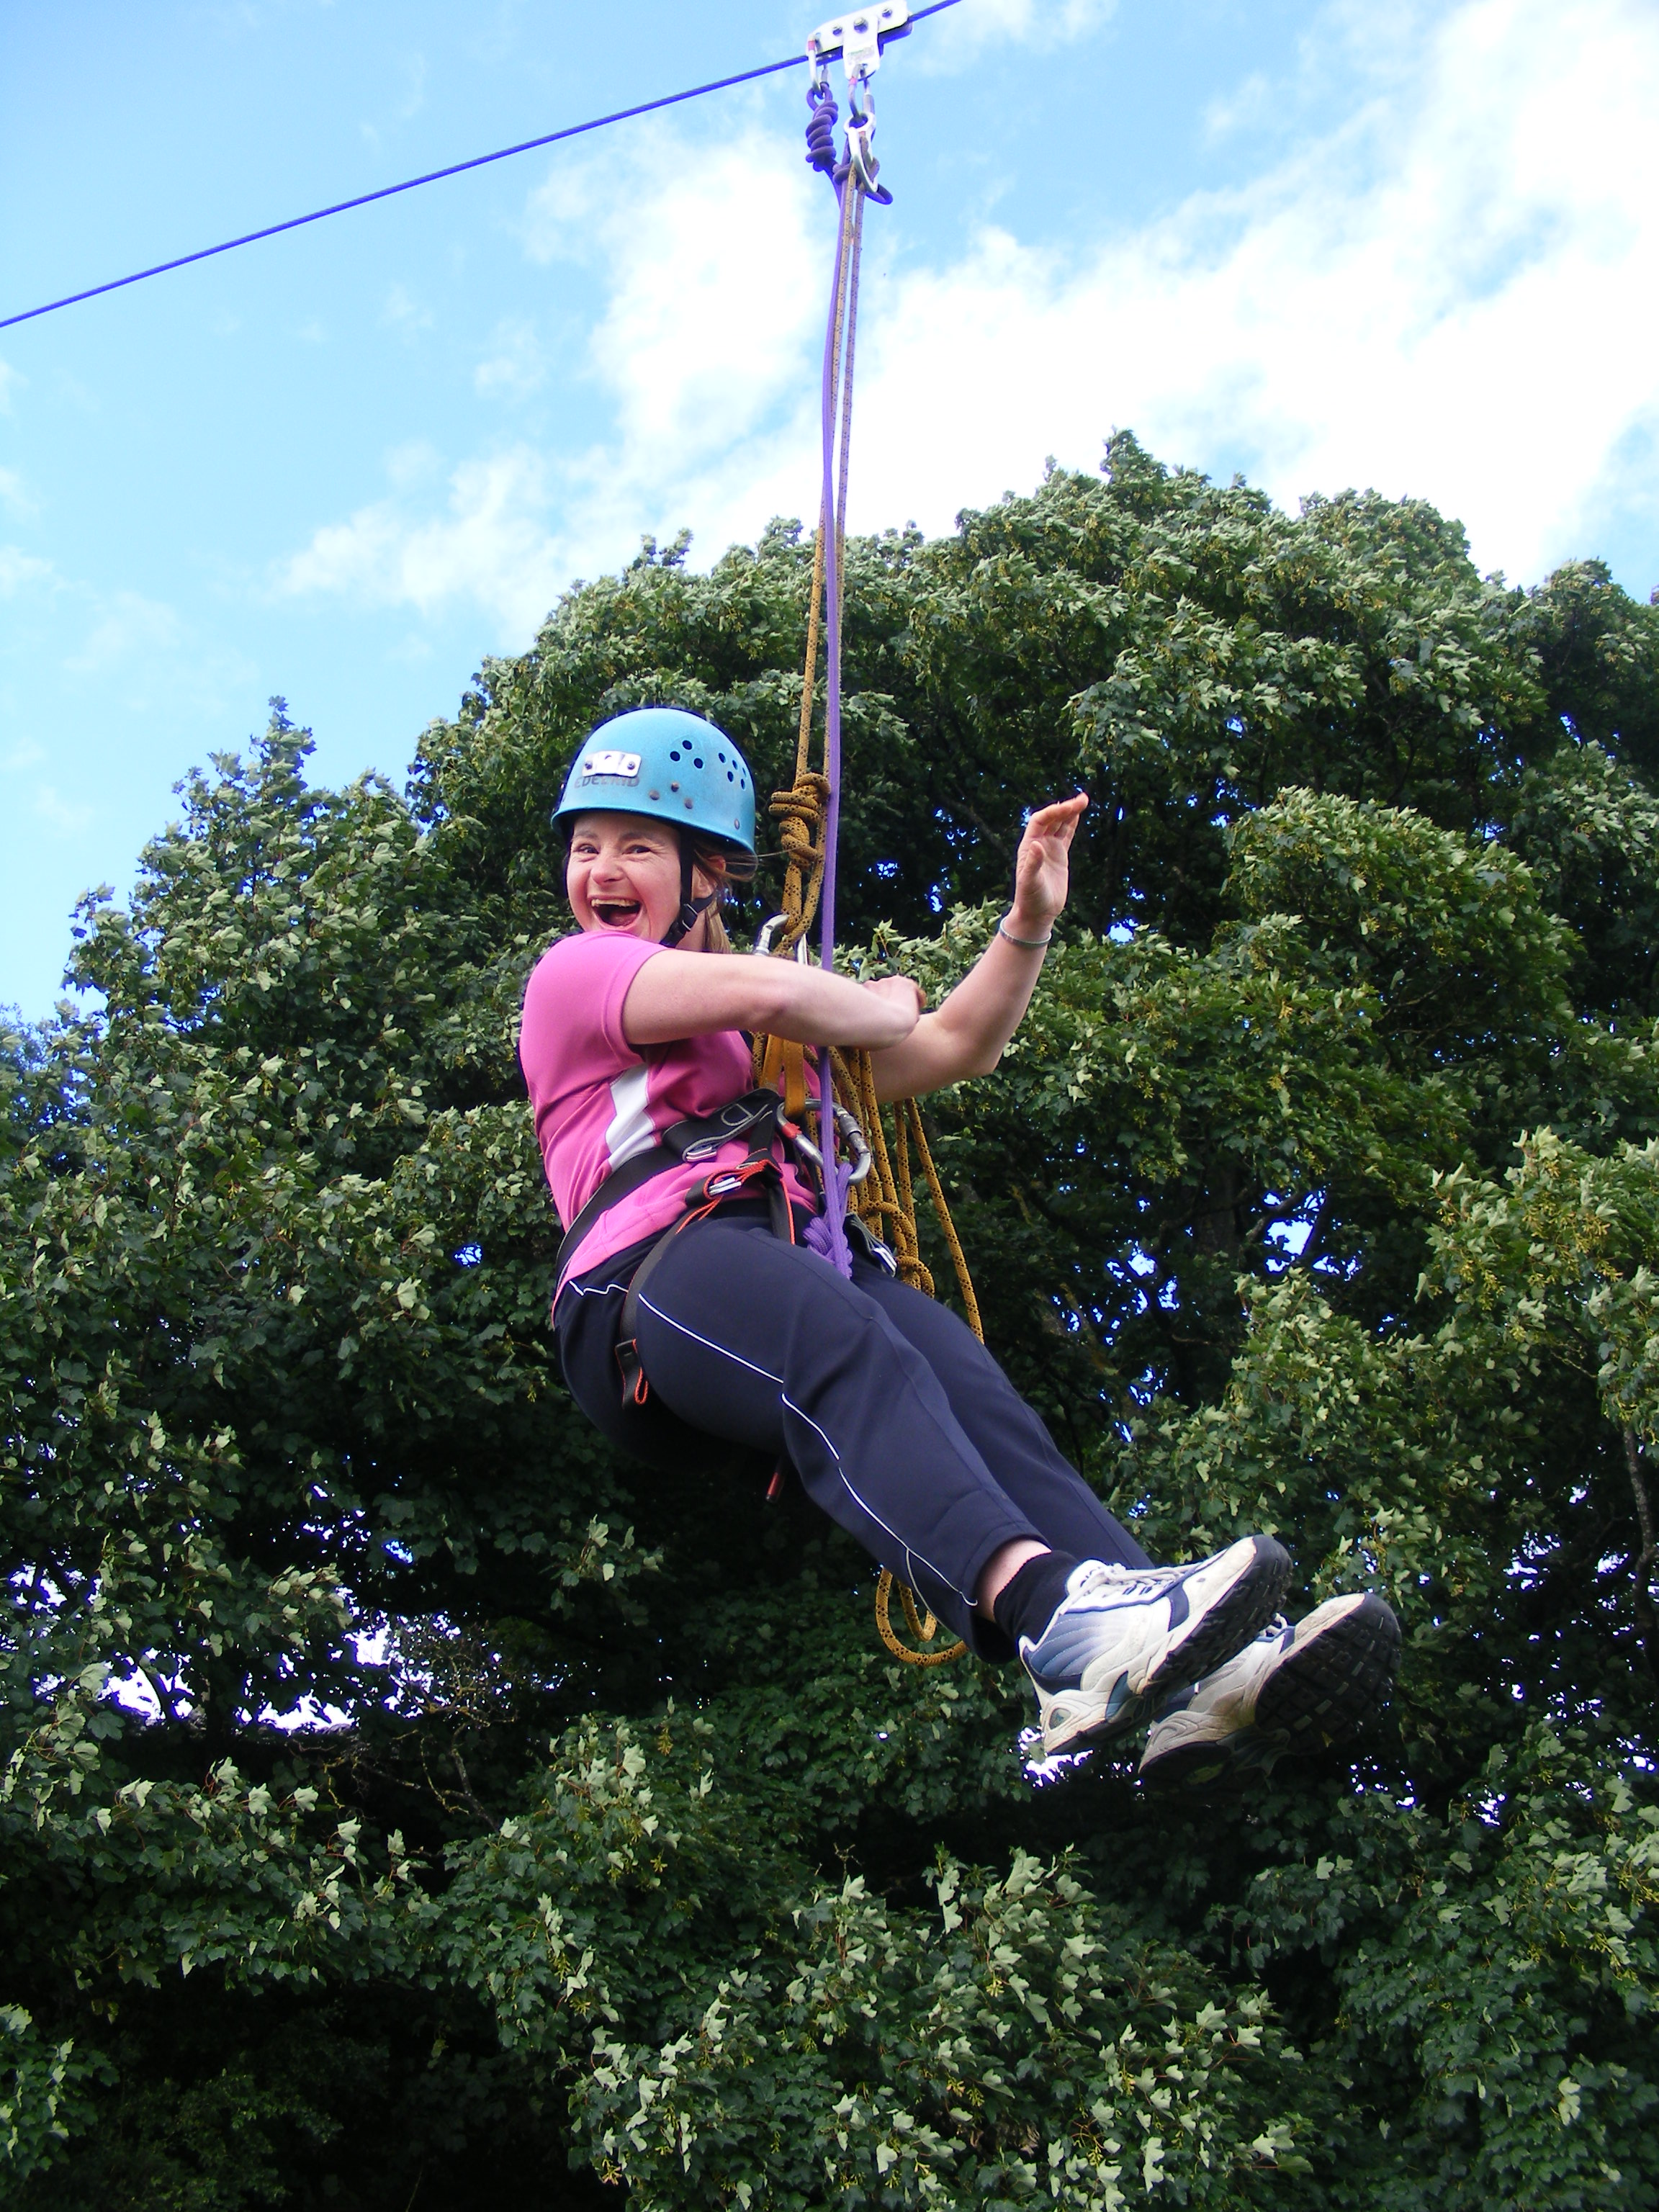 A woman on a zip wire with trees behind